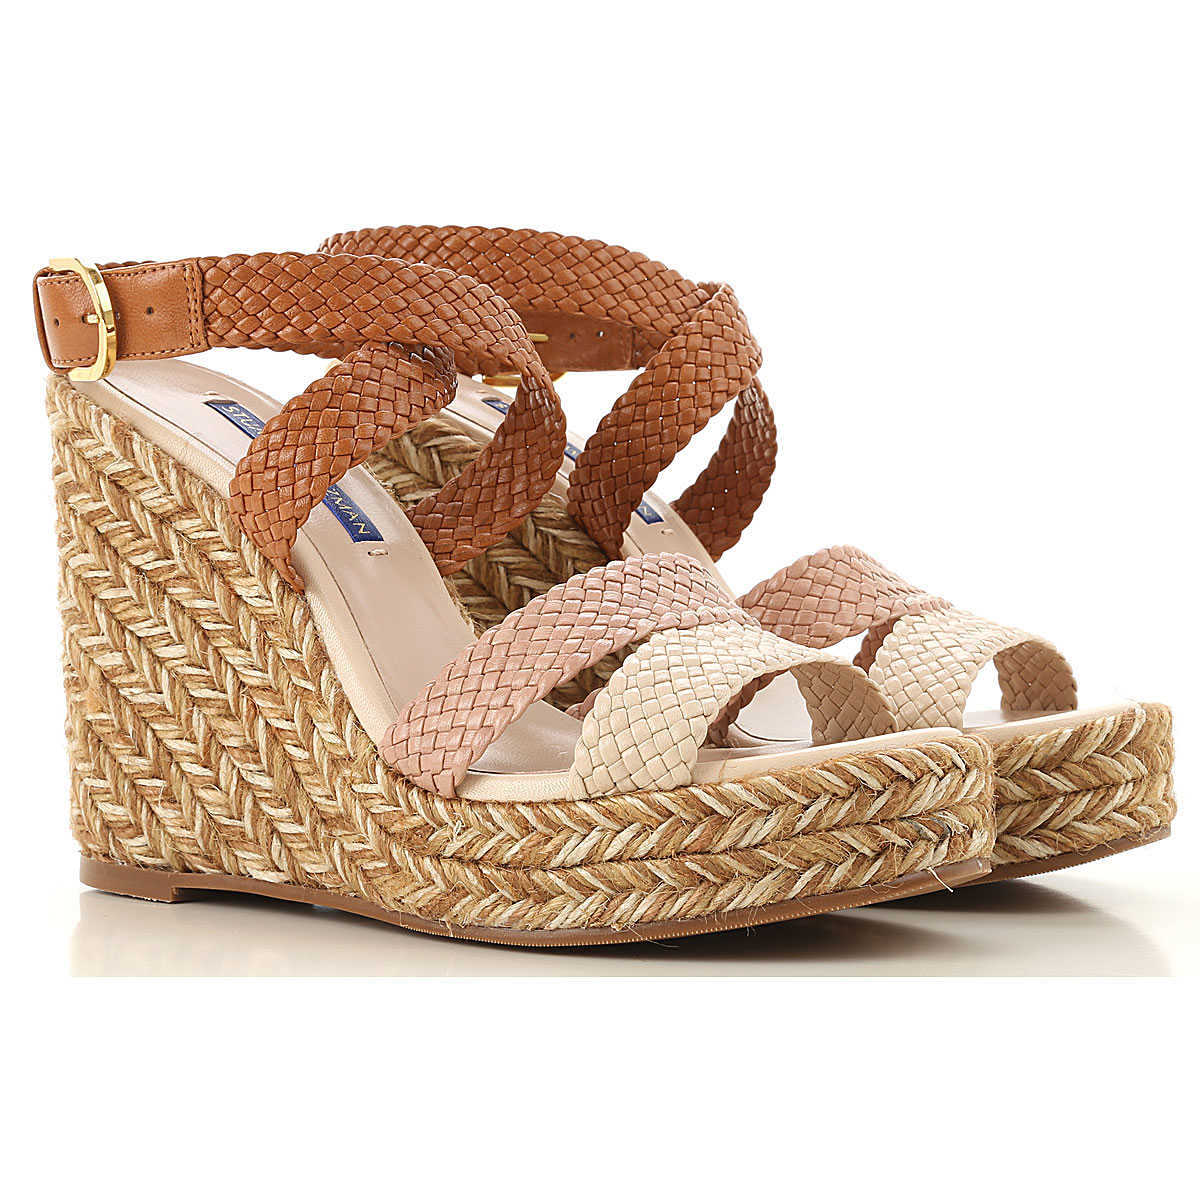 Stuart Weitzman Wedges for Women On Sale Beige DK - GOOFASH - Womens HOUSE SHOES